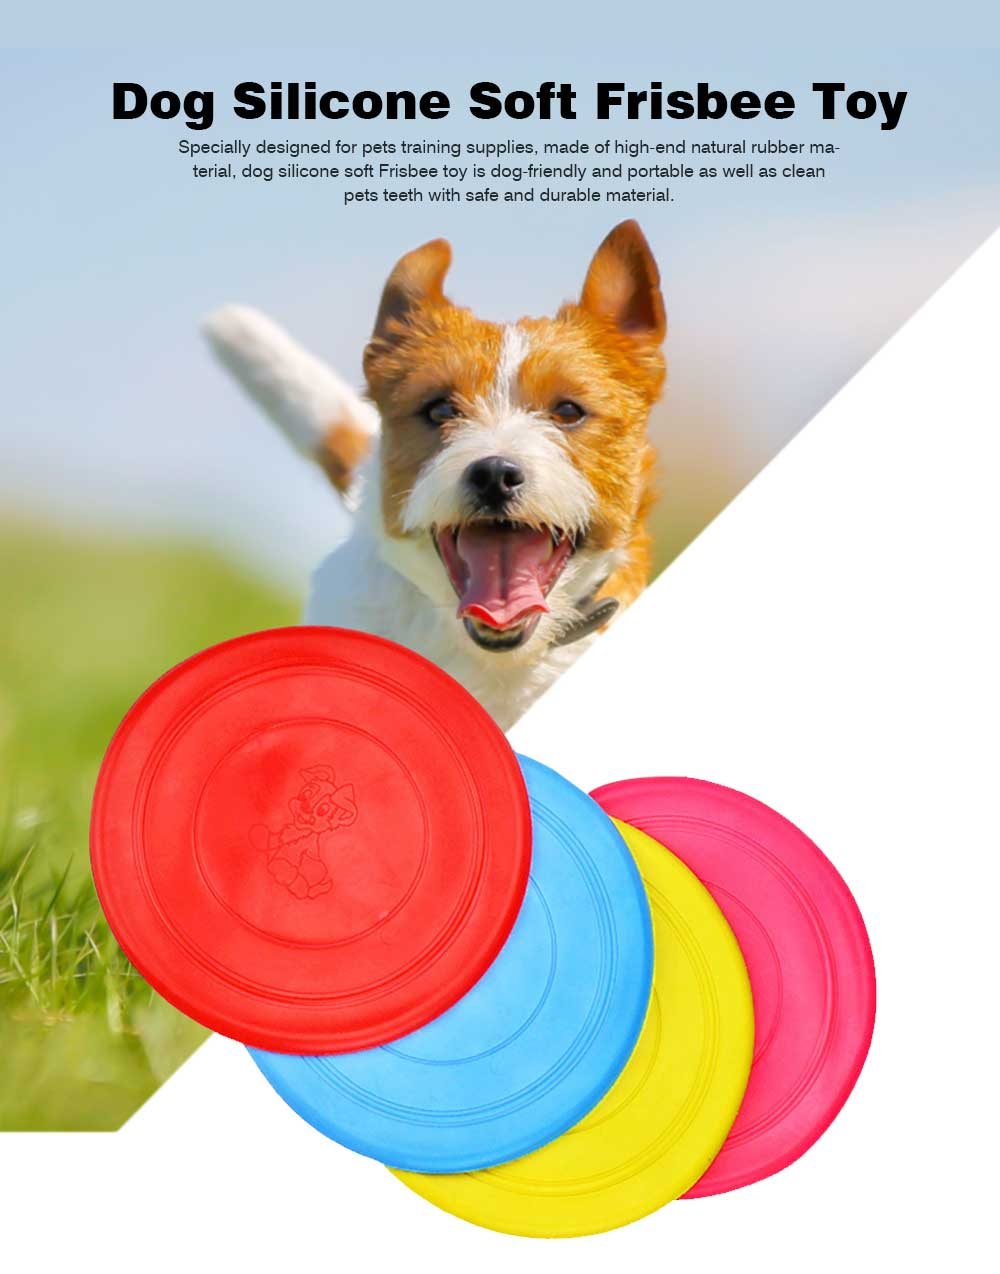 Dog Silicone Soft Frisbee Toy Bite Resistant for Throwing Interactive Pets Training Outdoors 0